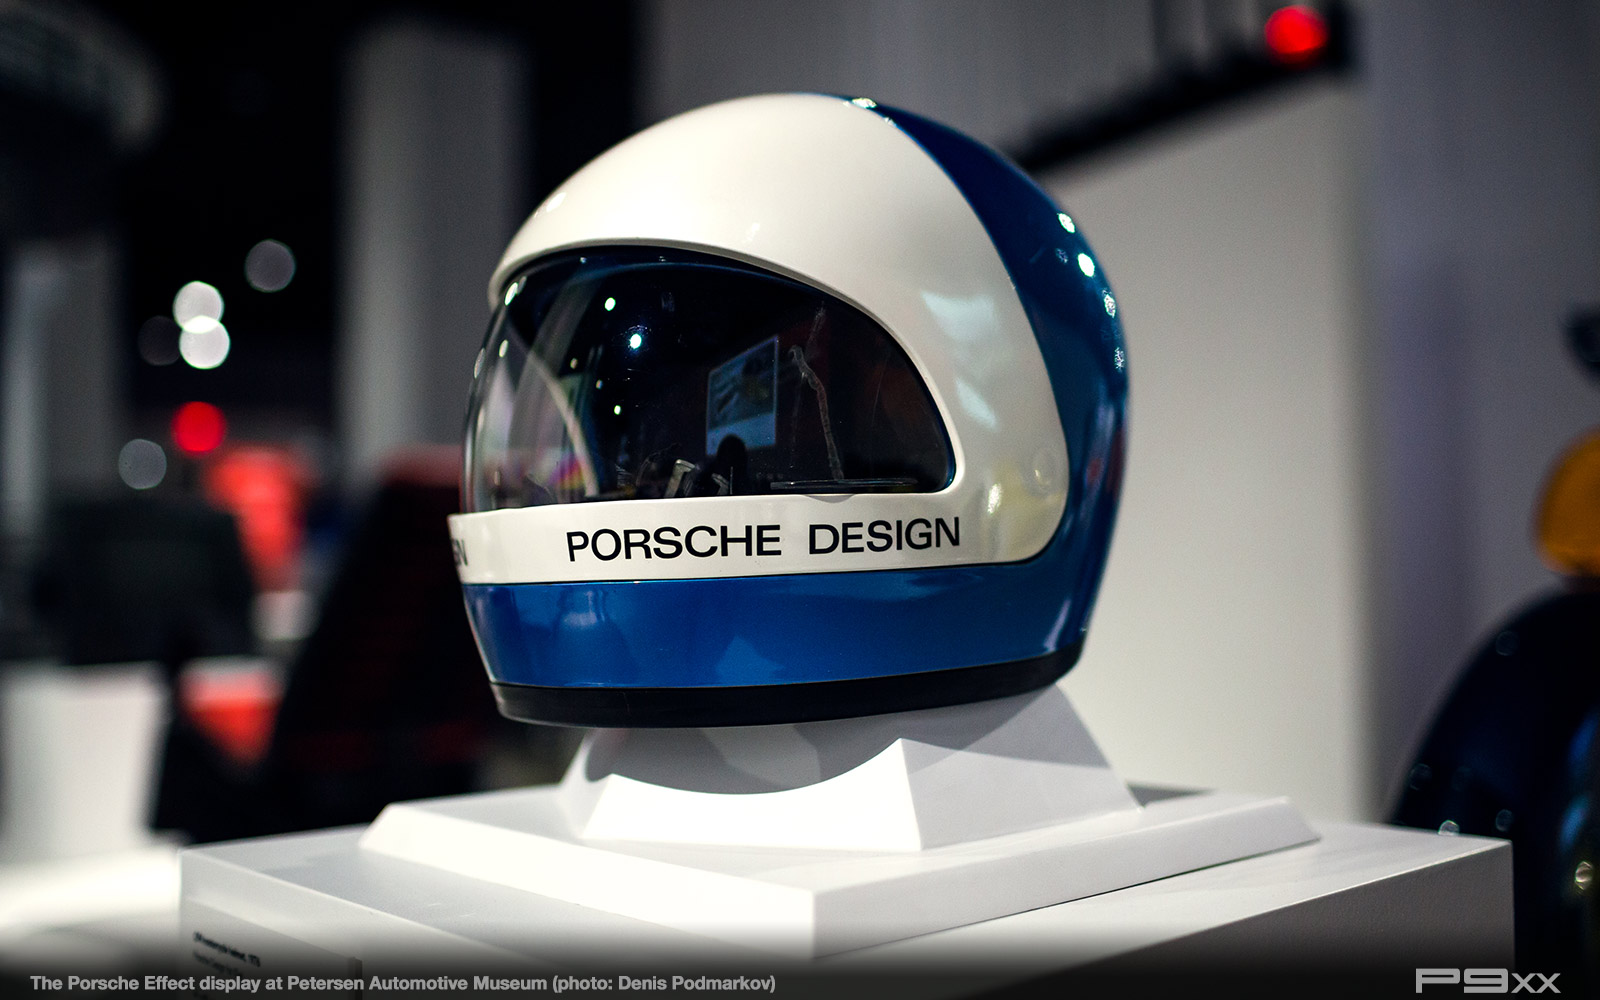 2018-the-porsche-effect-petersen-museum-dpod-343